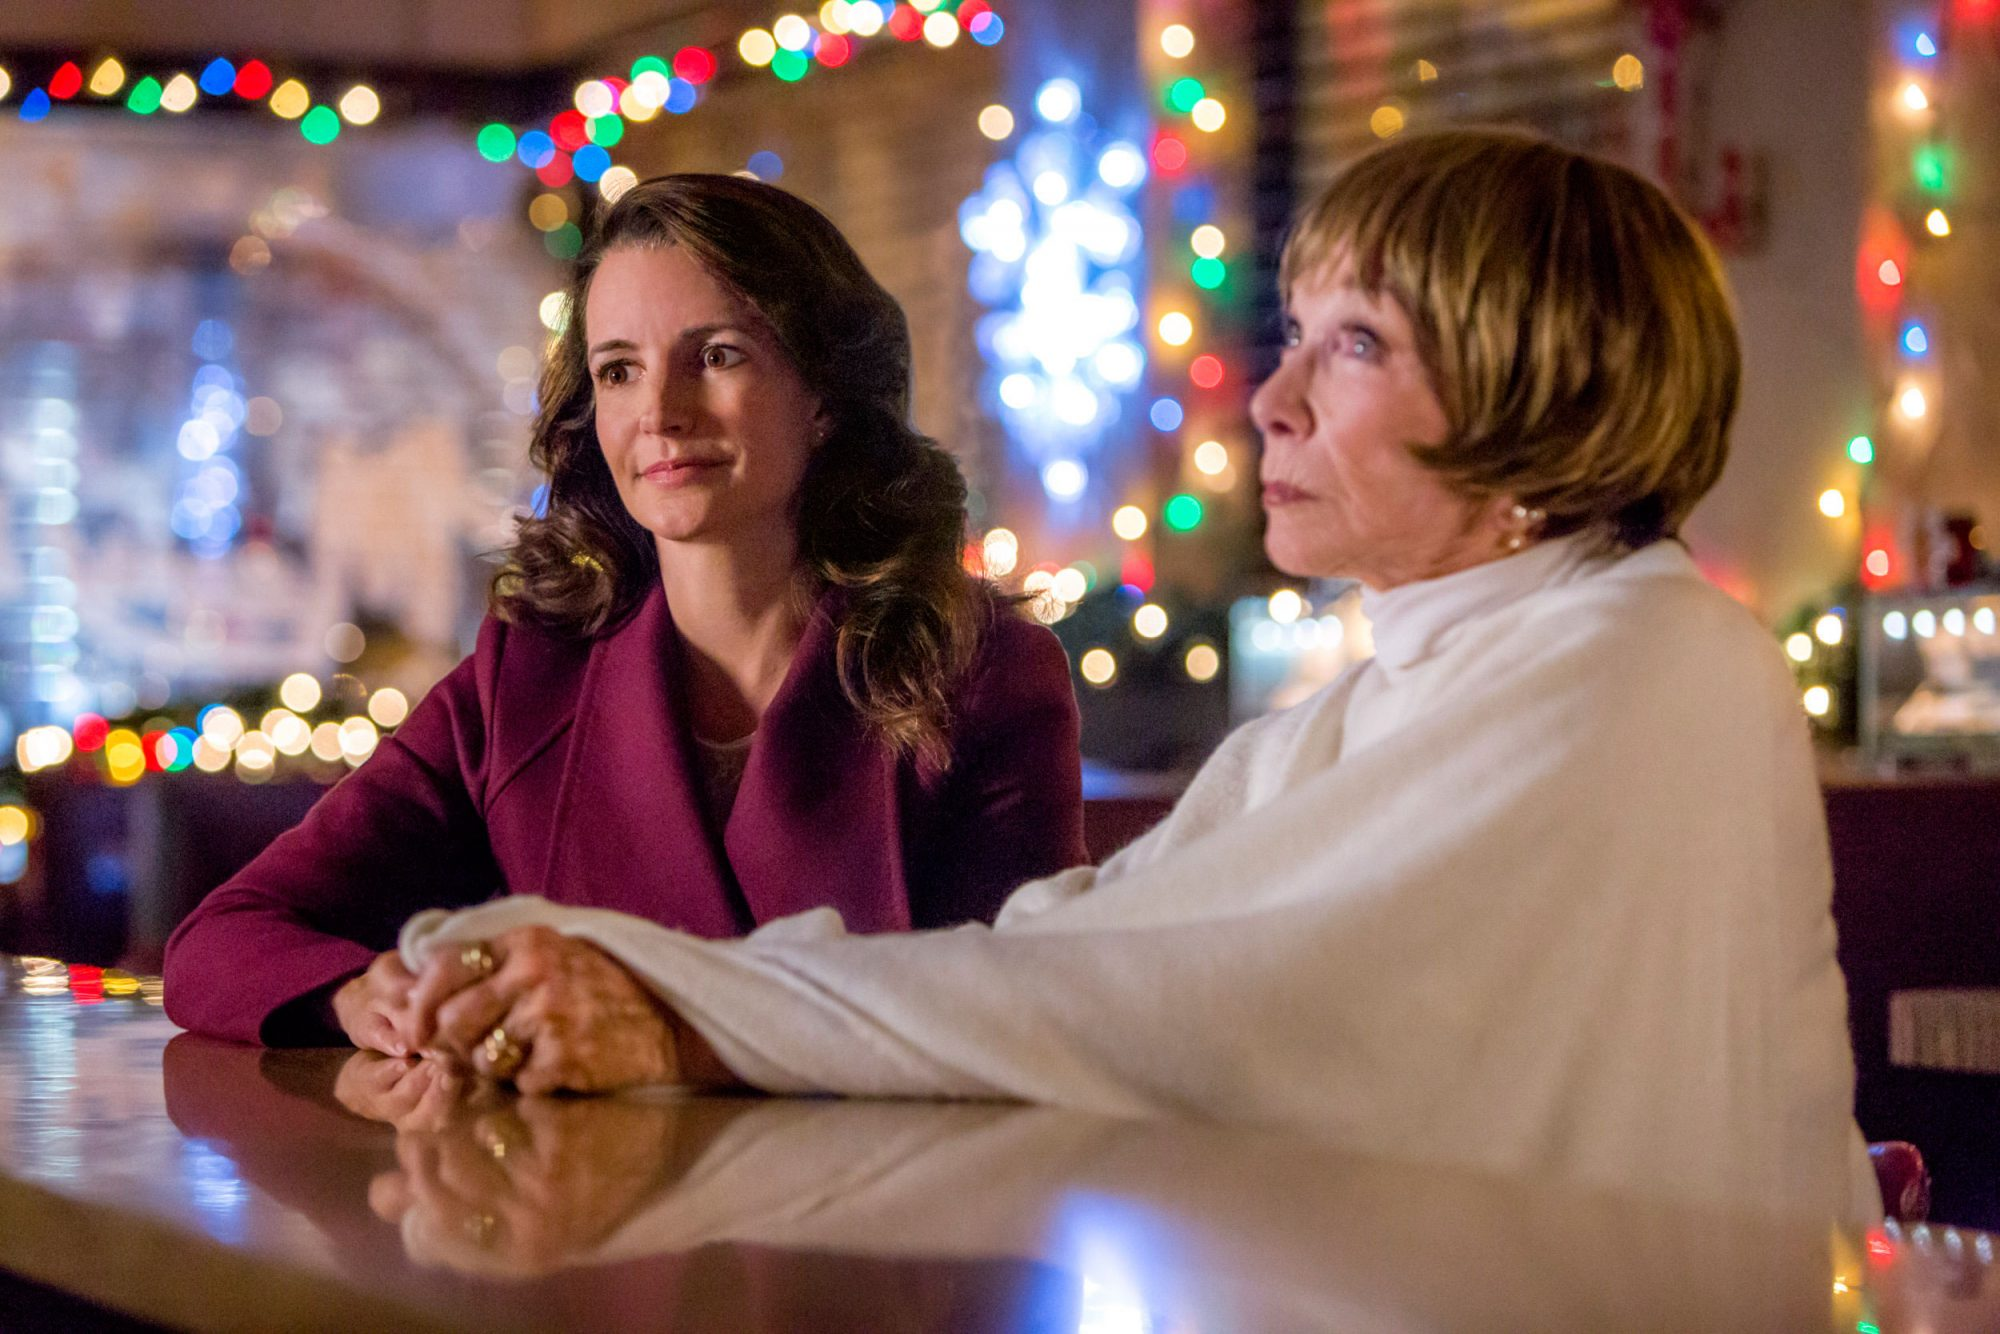 RX_1709_Top 15 Hallmark Christmas Movies According to Viewers_A Heavenly Christmas